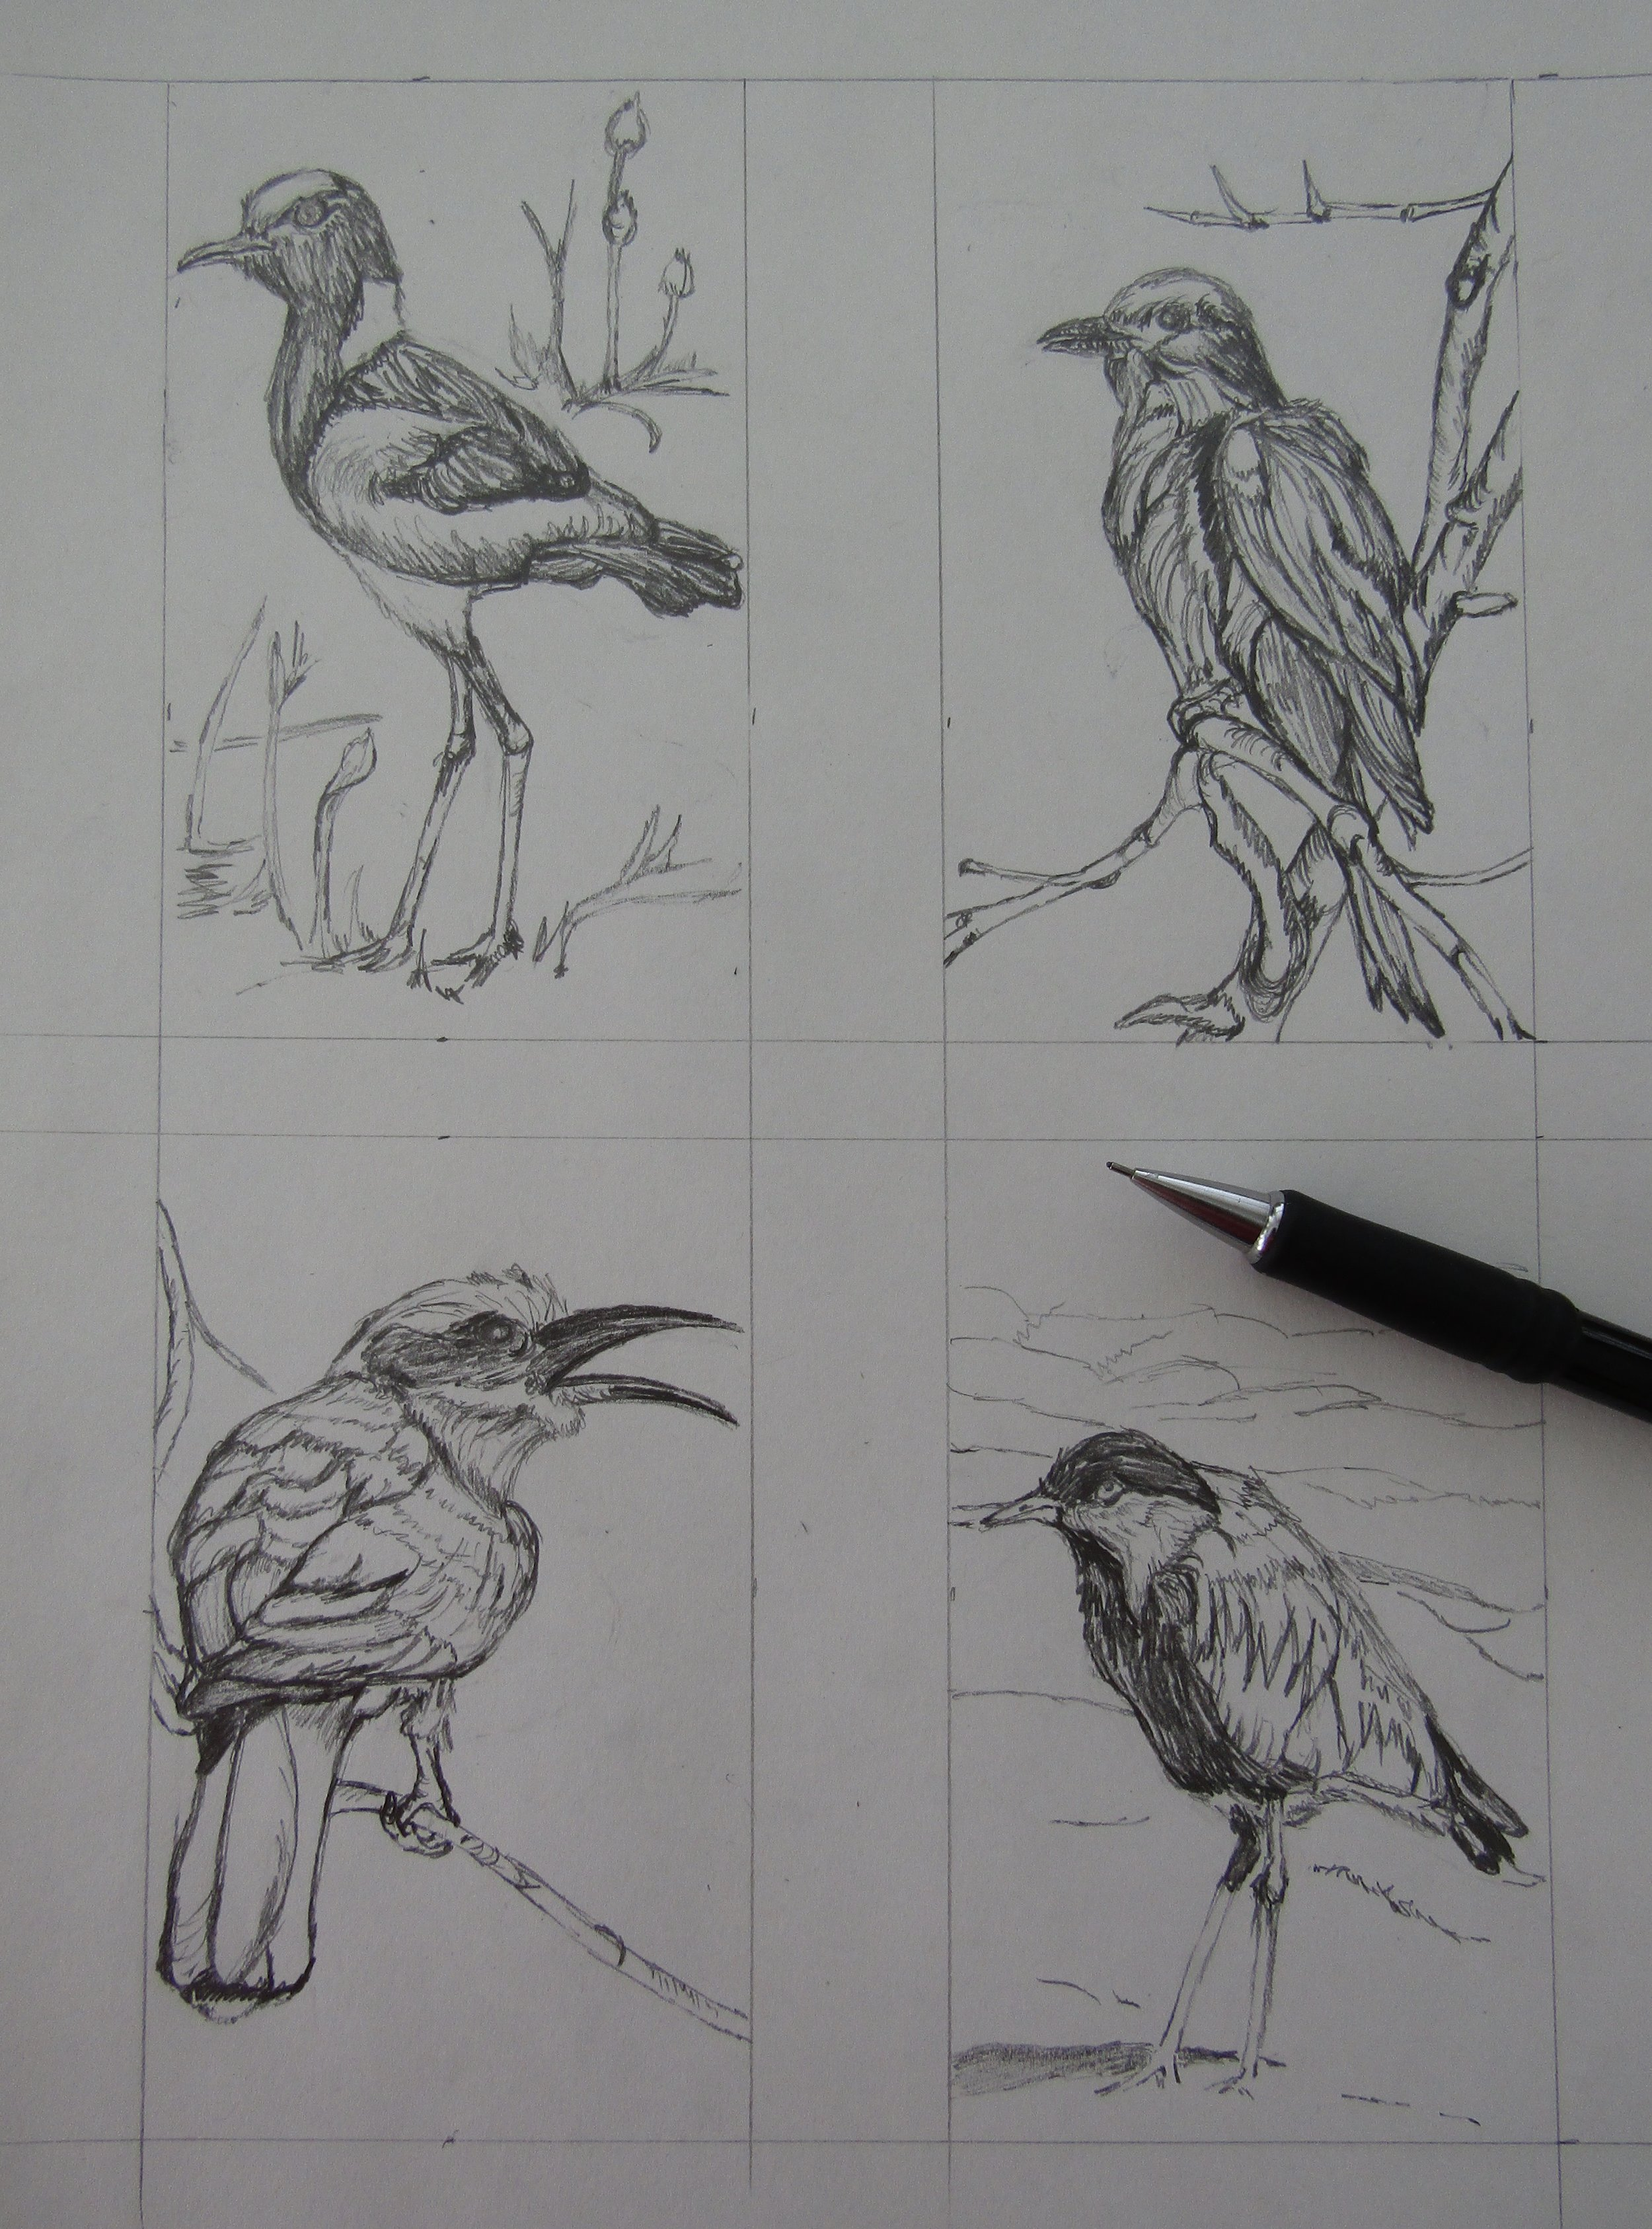 The numerous birds I saw inspired these drawings.